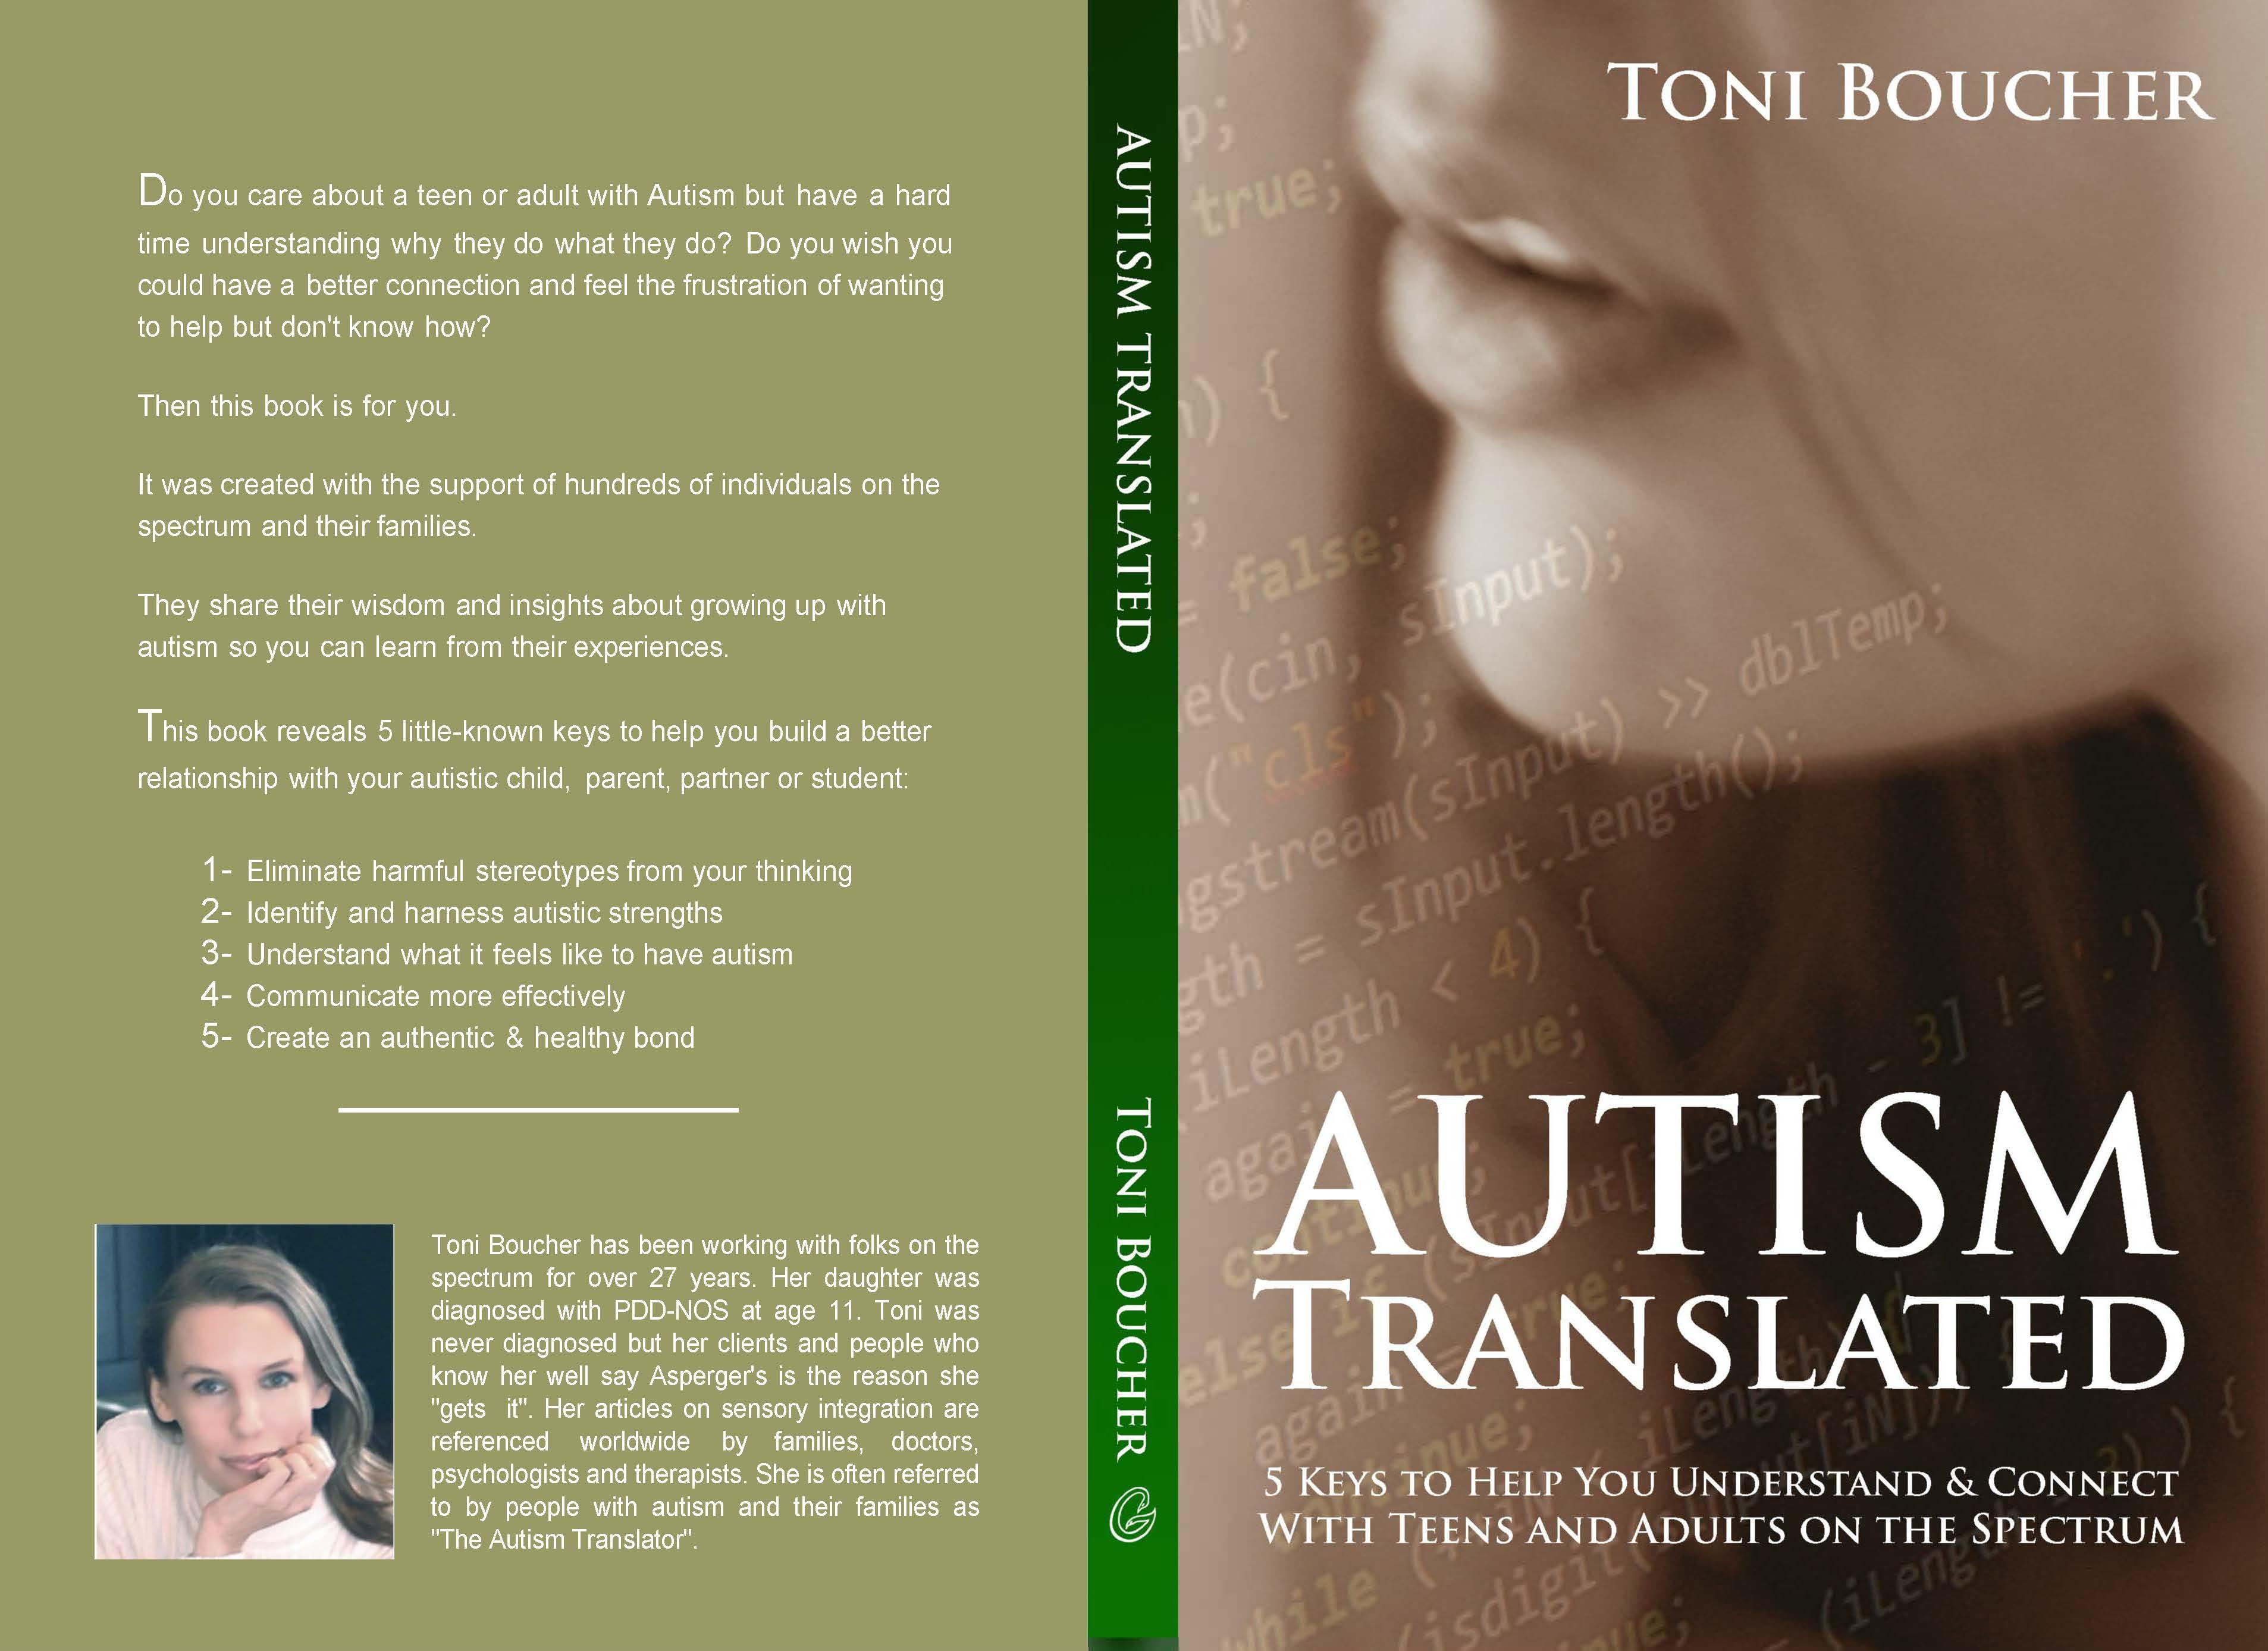 Autism Translated: 5 Keys to Help You Understand & Connect With Teens and Adults on the Spectrum cover image